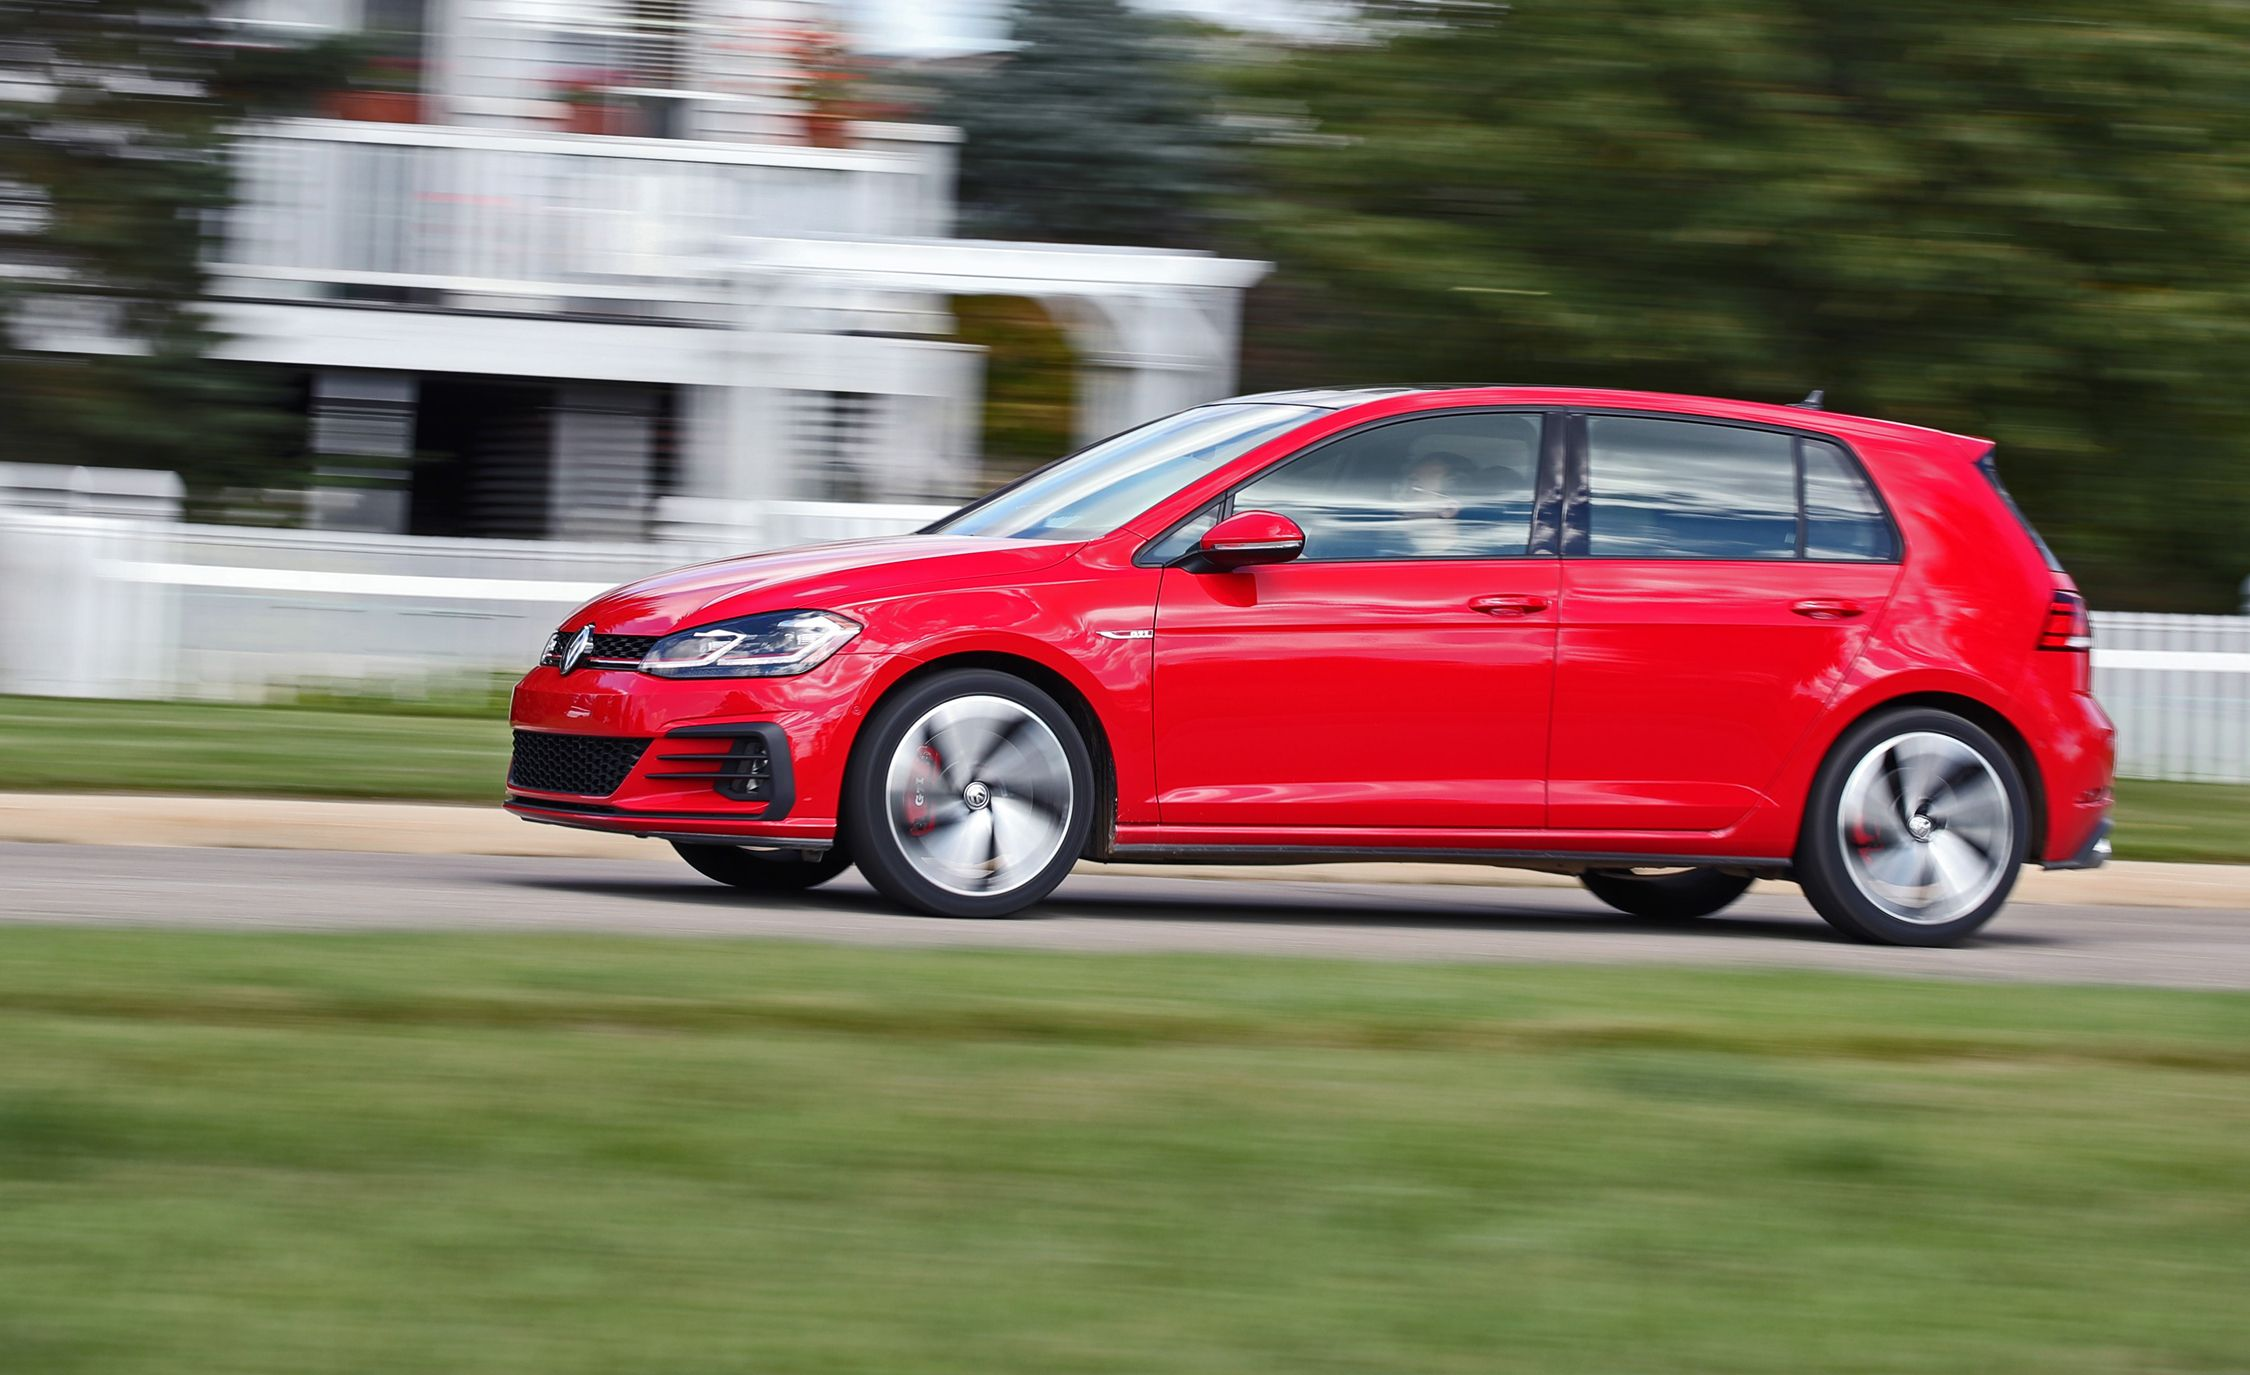 2019 Volkswagen Golf Gti Reviews Volkswagen Golf Gti Price Photos